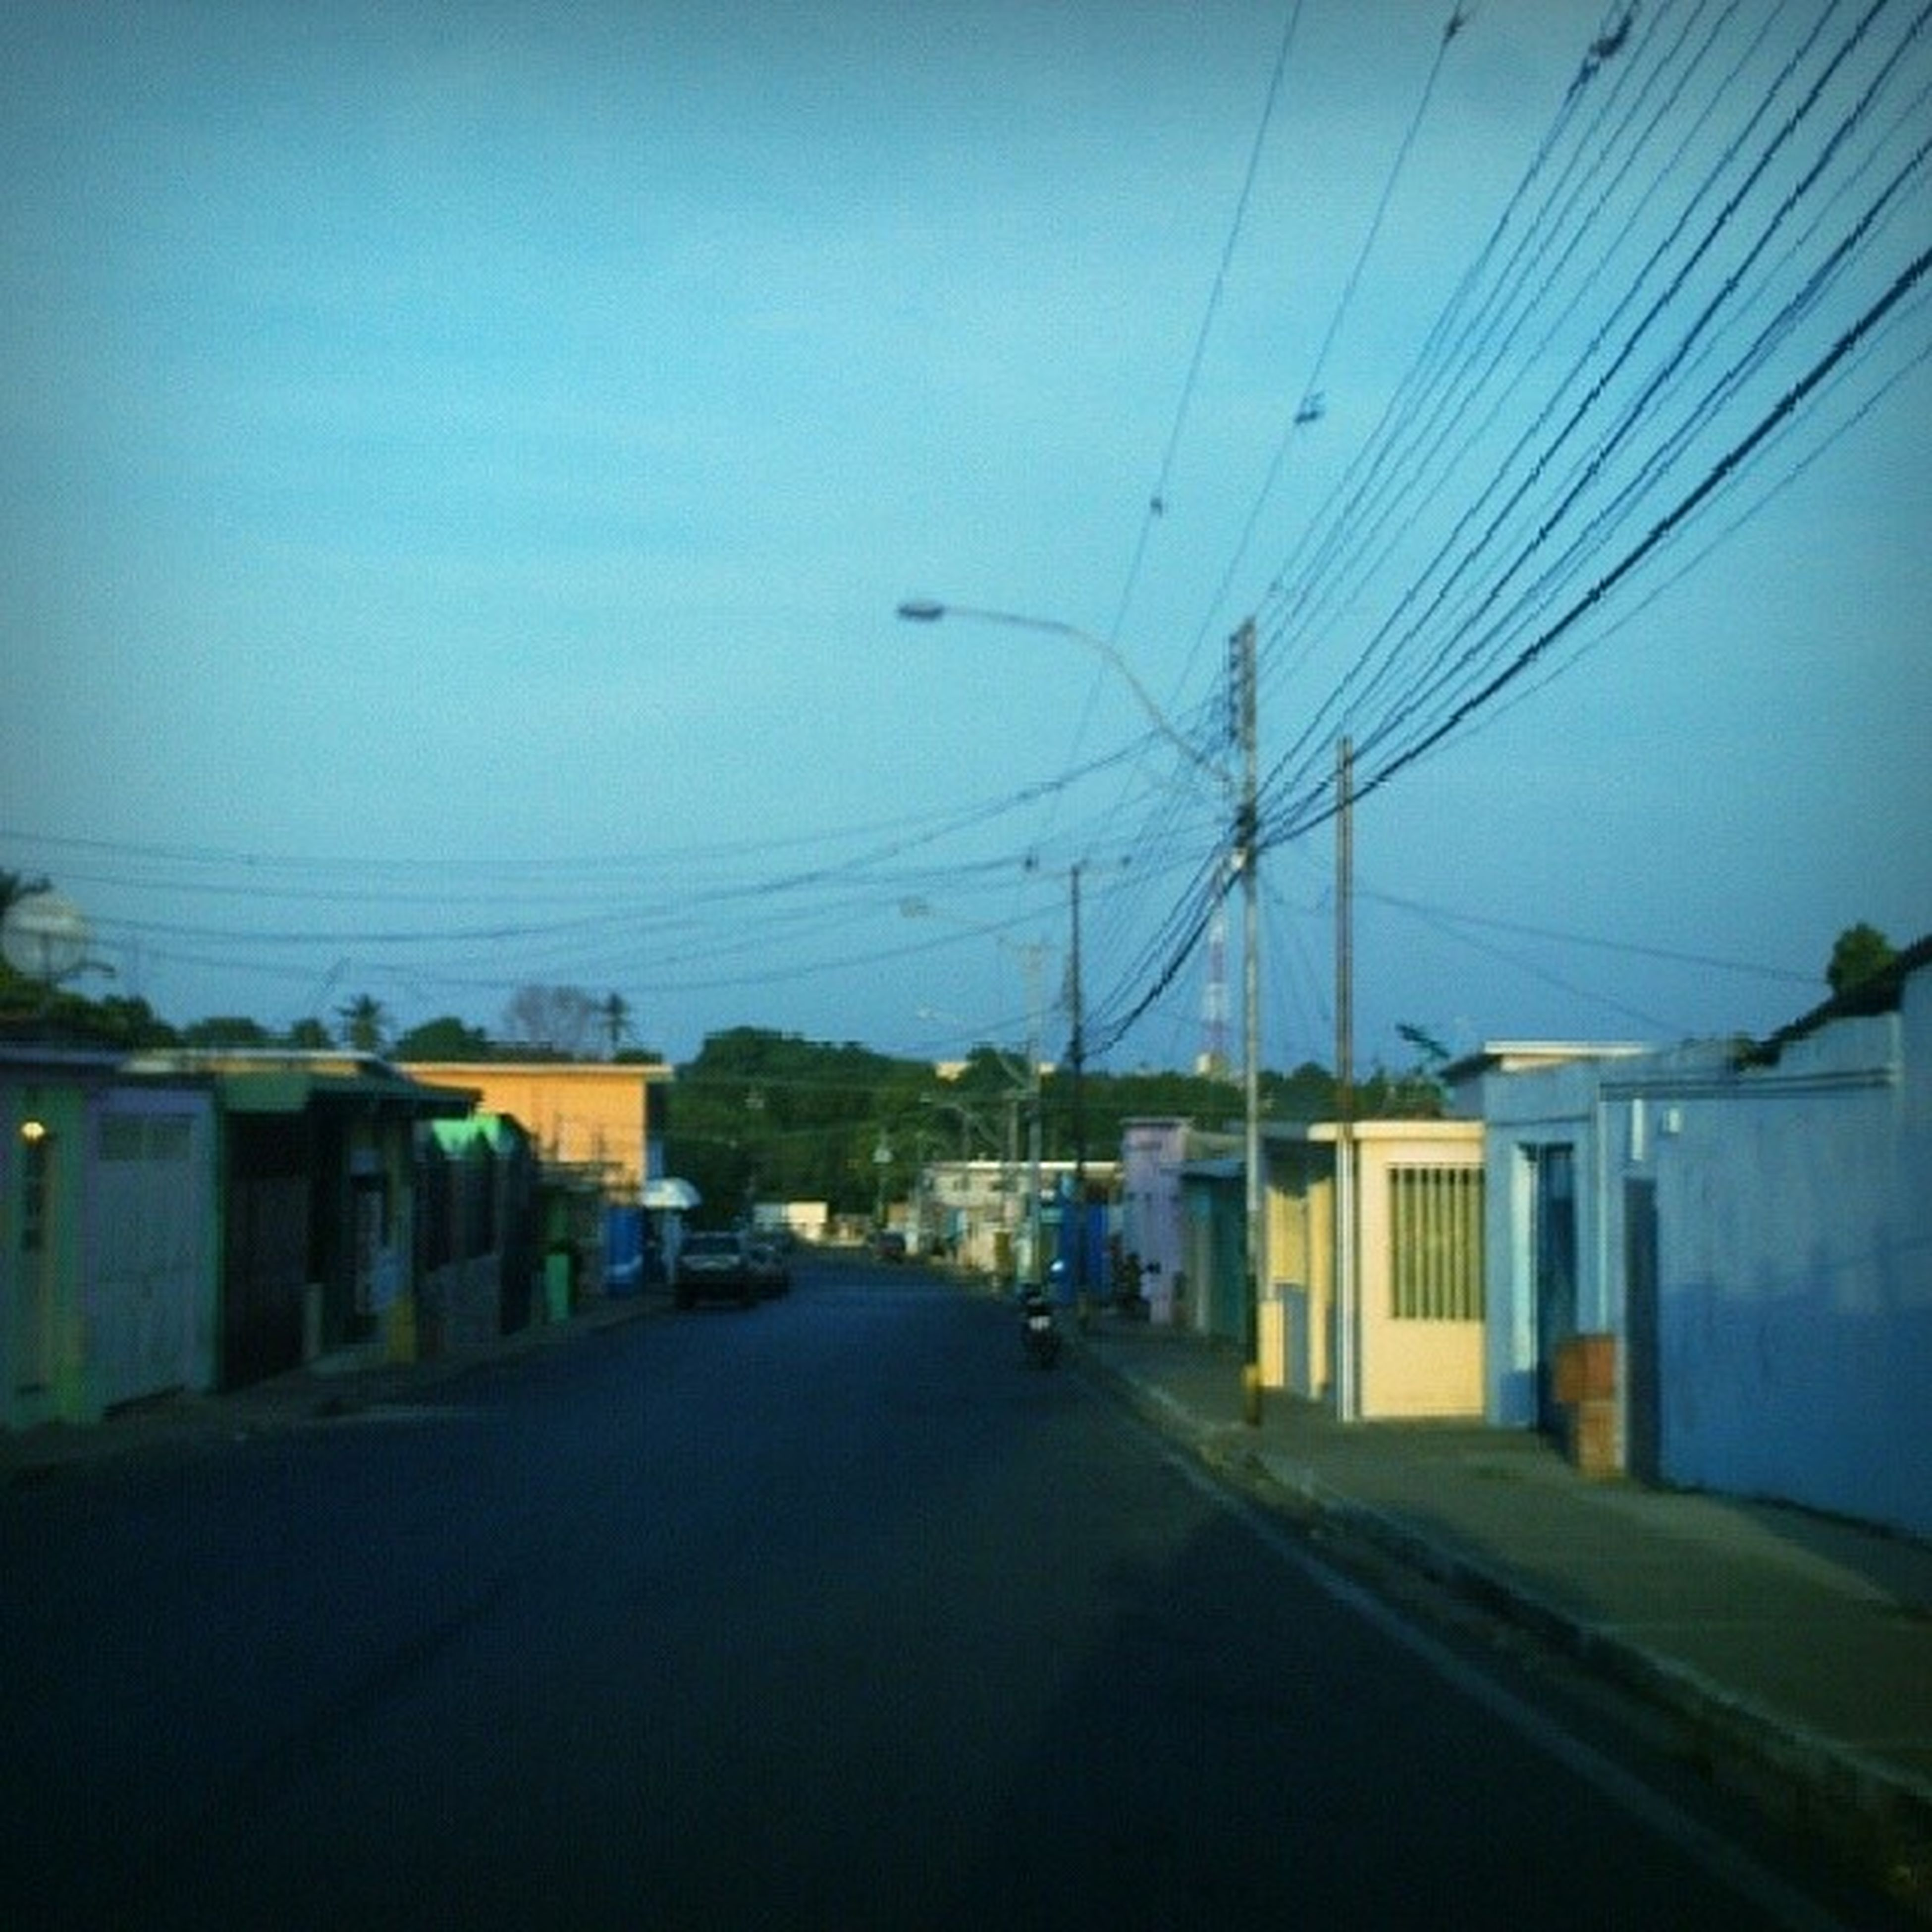 the way forward, building exterior, built structure, architecture, power line, road, electricity pylon, street, transportation, diminishing perspective, electricity, house, clear sky, street light, vanishing point, sky, cable, residential structure, empty, long